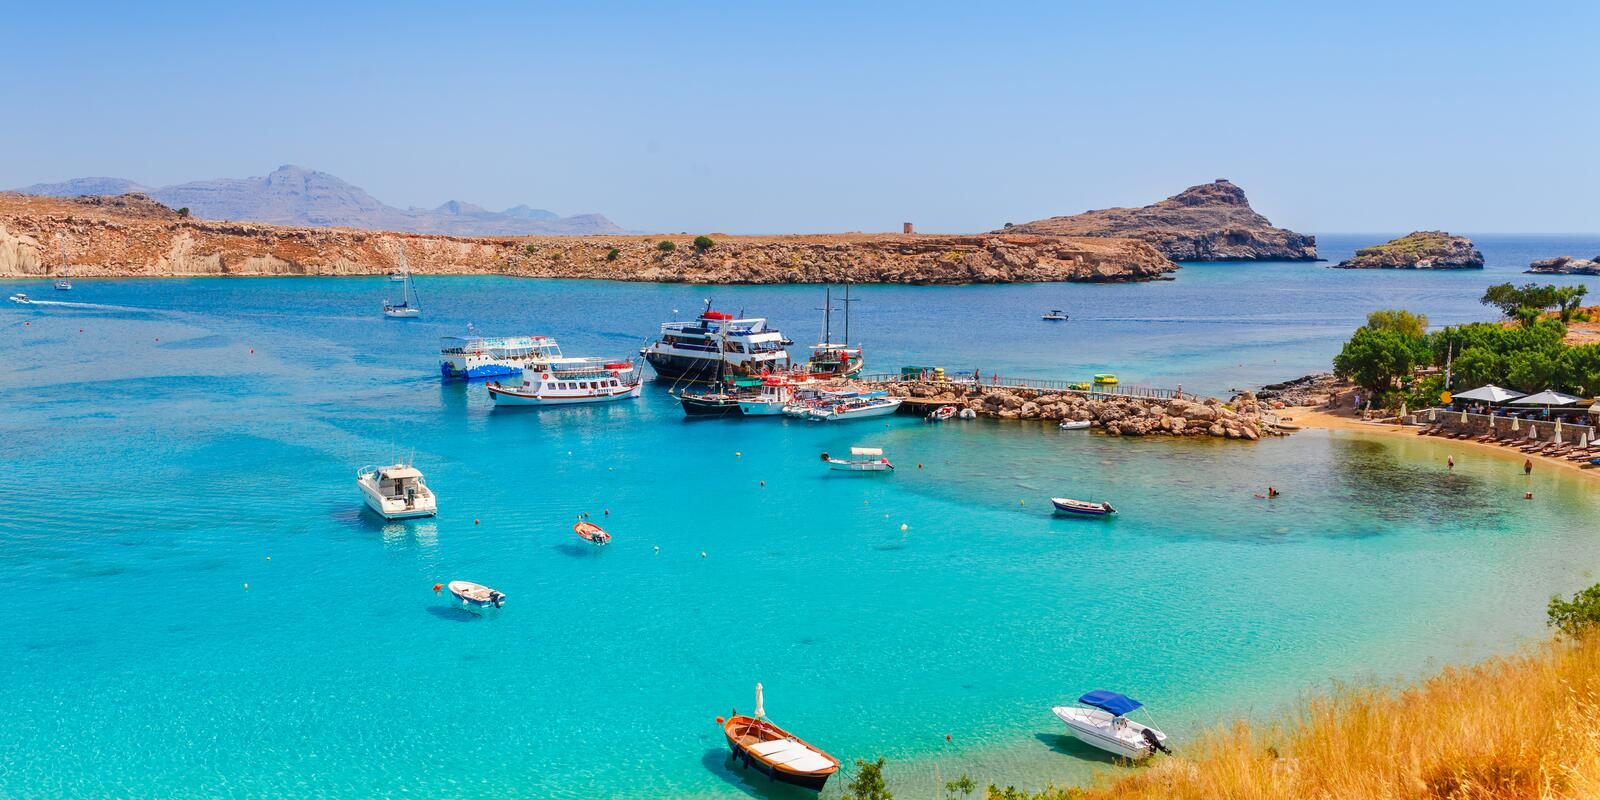 From Kos to Samos: The North Eastern Dodecanese